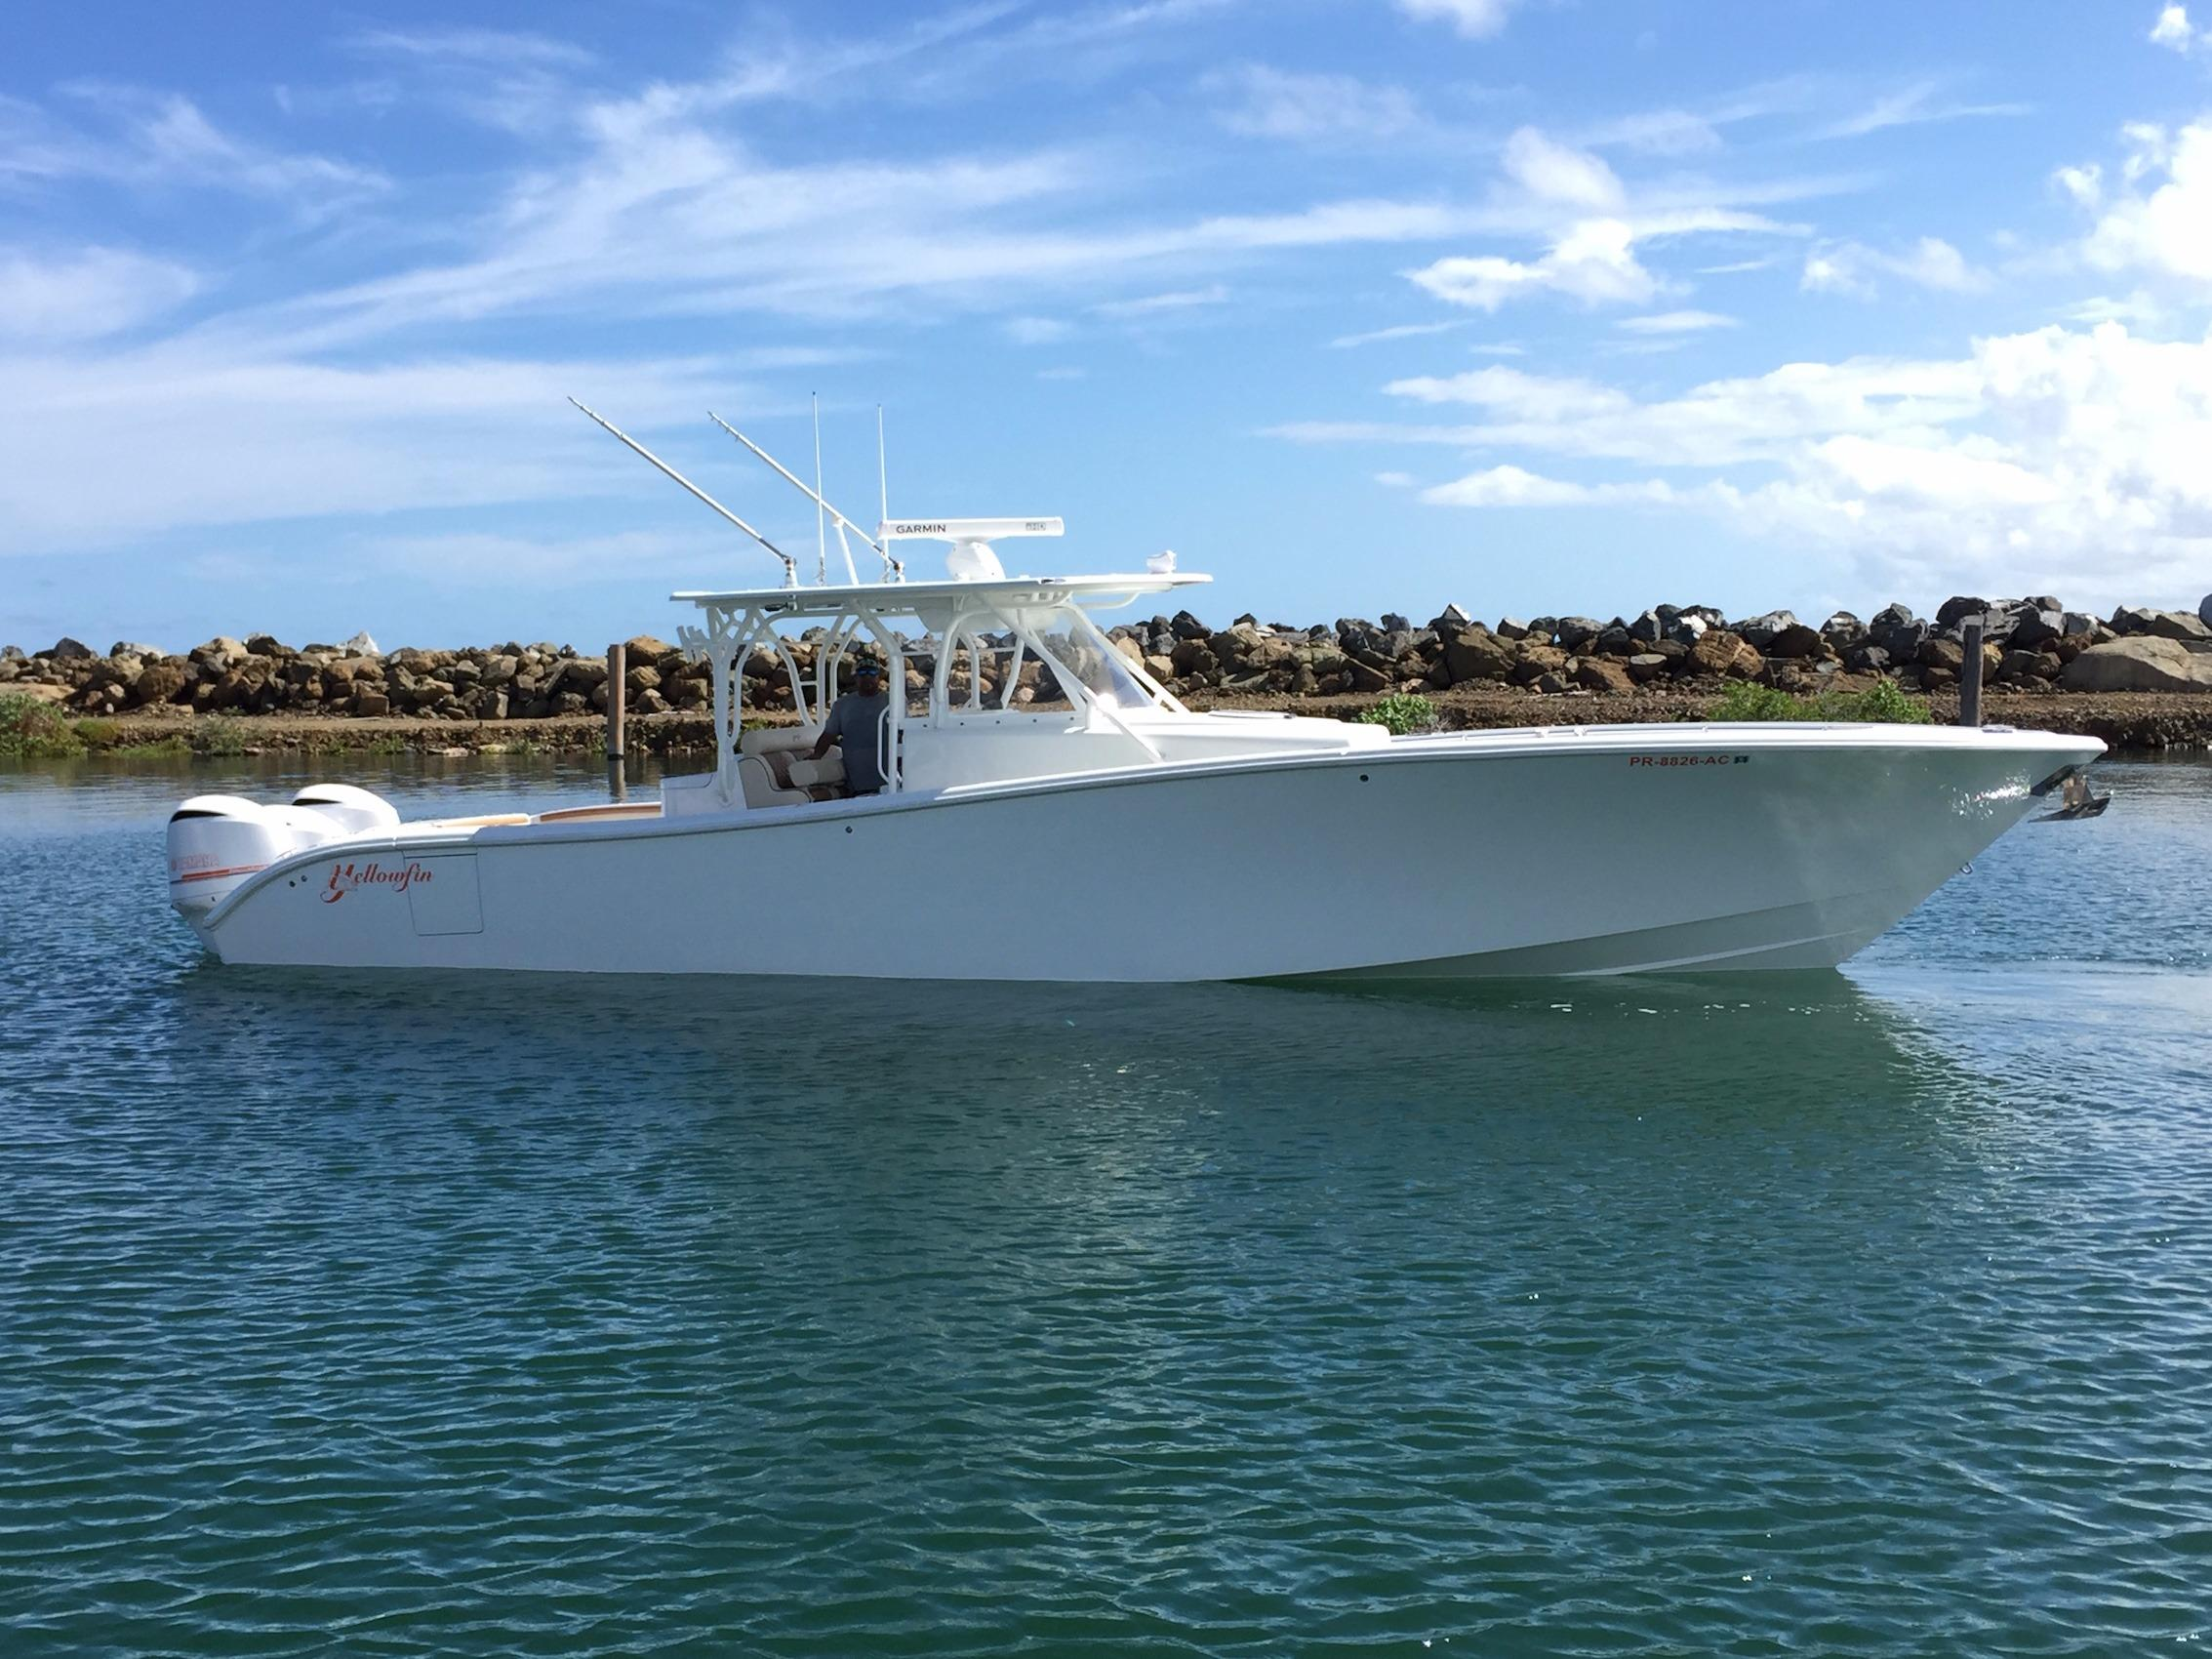 Pics For Gt Yellowfin Boats 34